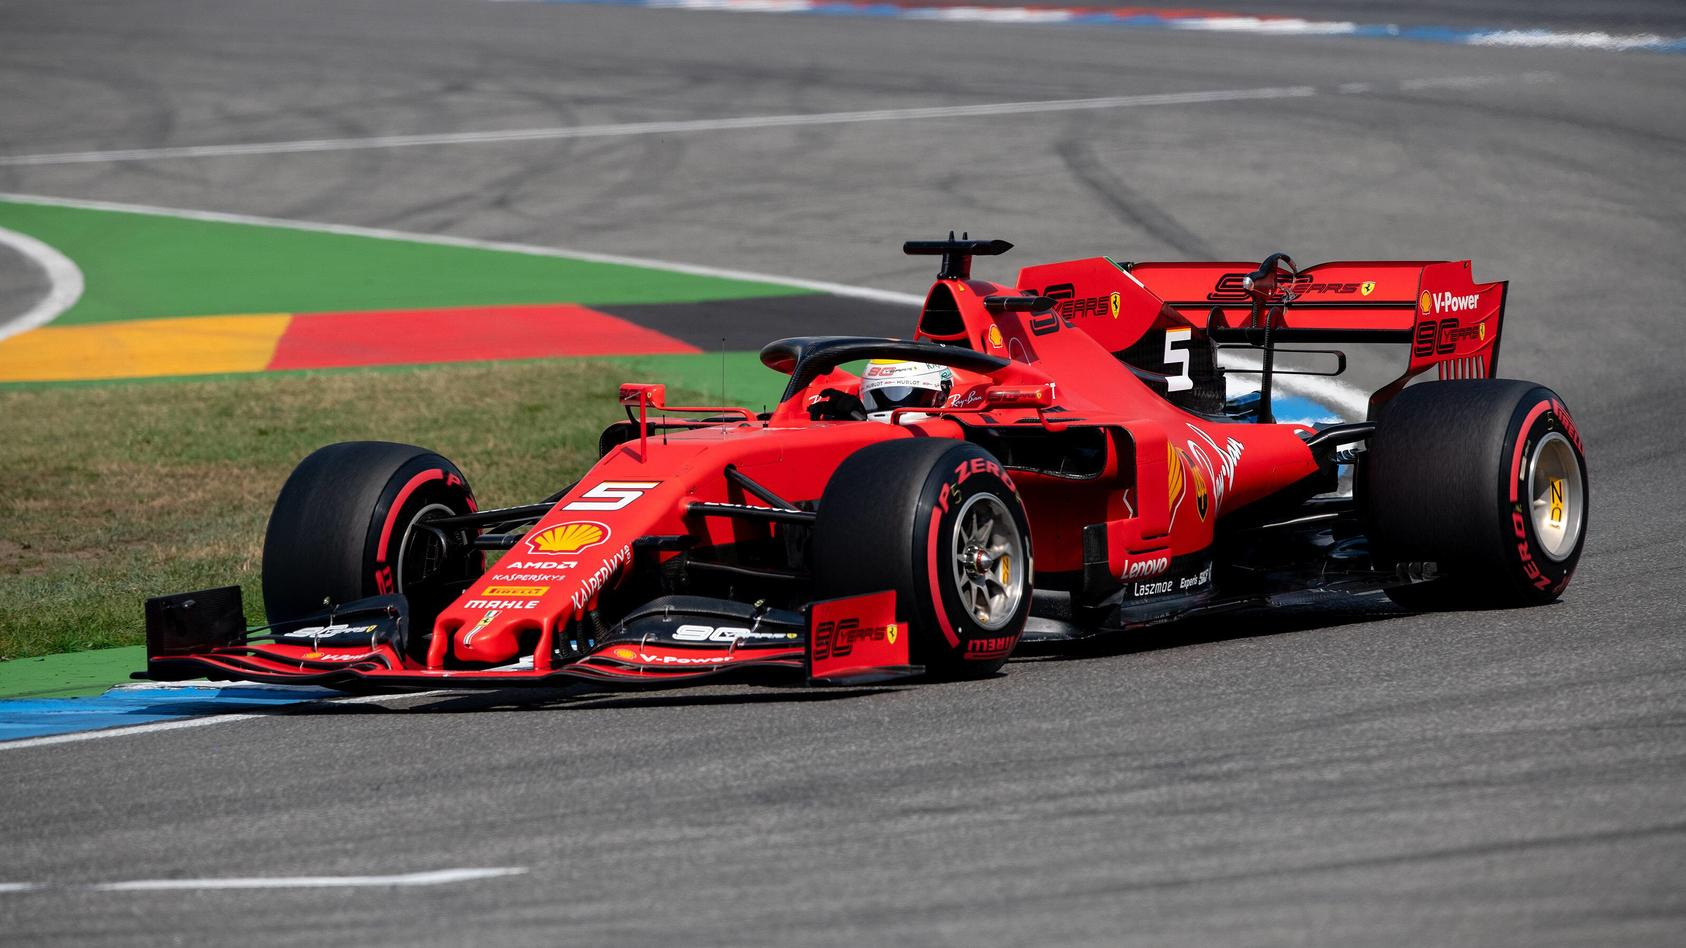 Sebastian Vettel Scuderia Ferrari formula 1 GP Germany in Hockenheim 27 07 2019 Photo mspb Jerry